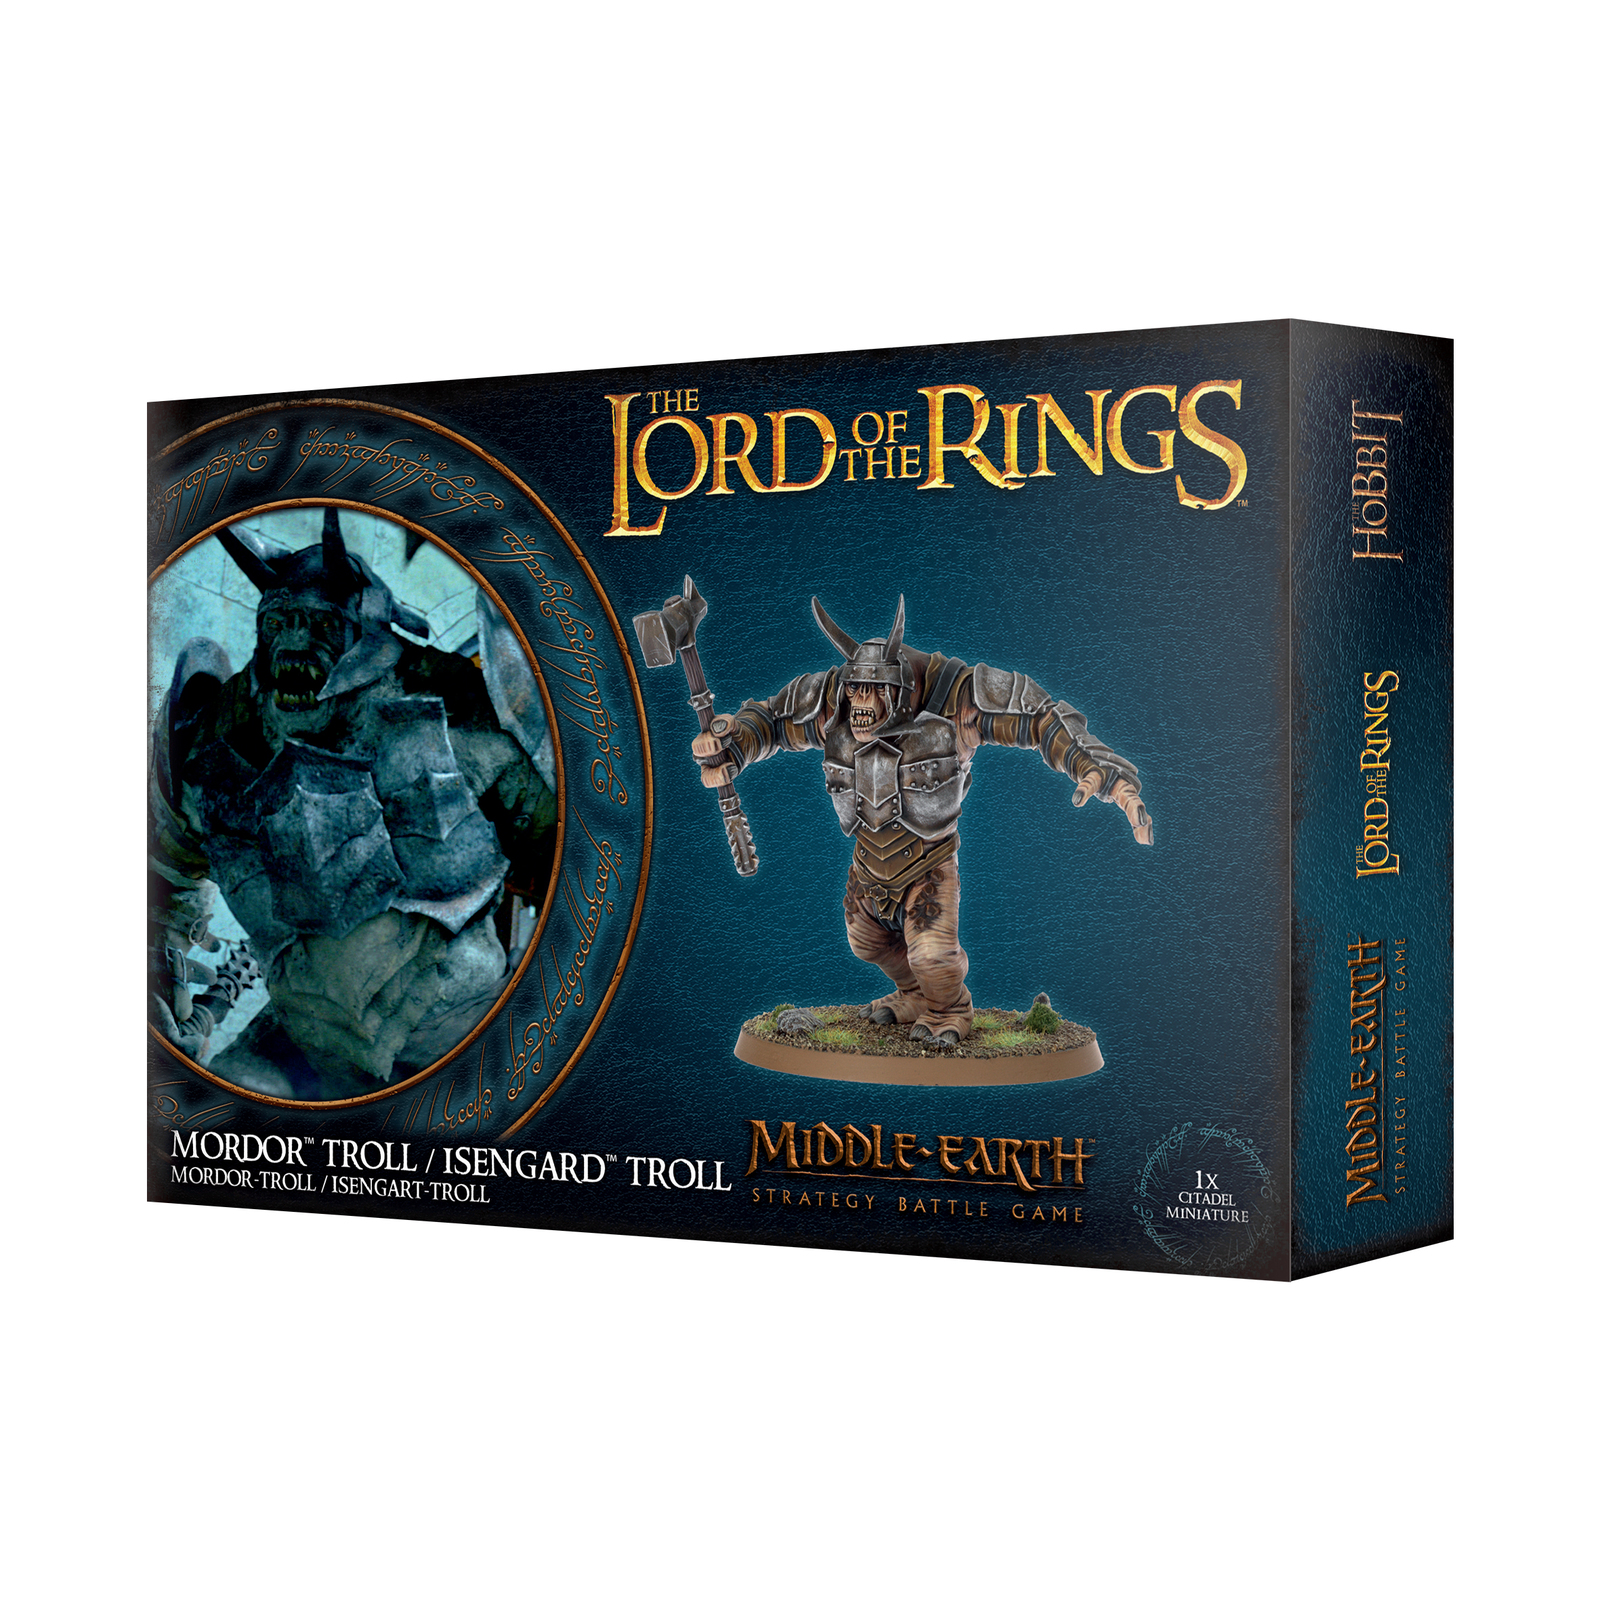 Lord of the Rings: Mordor Troll image